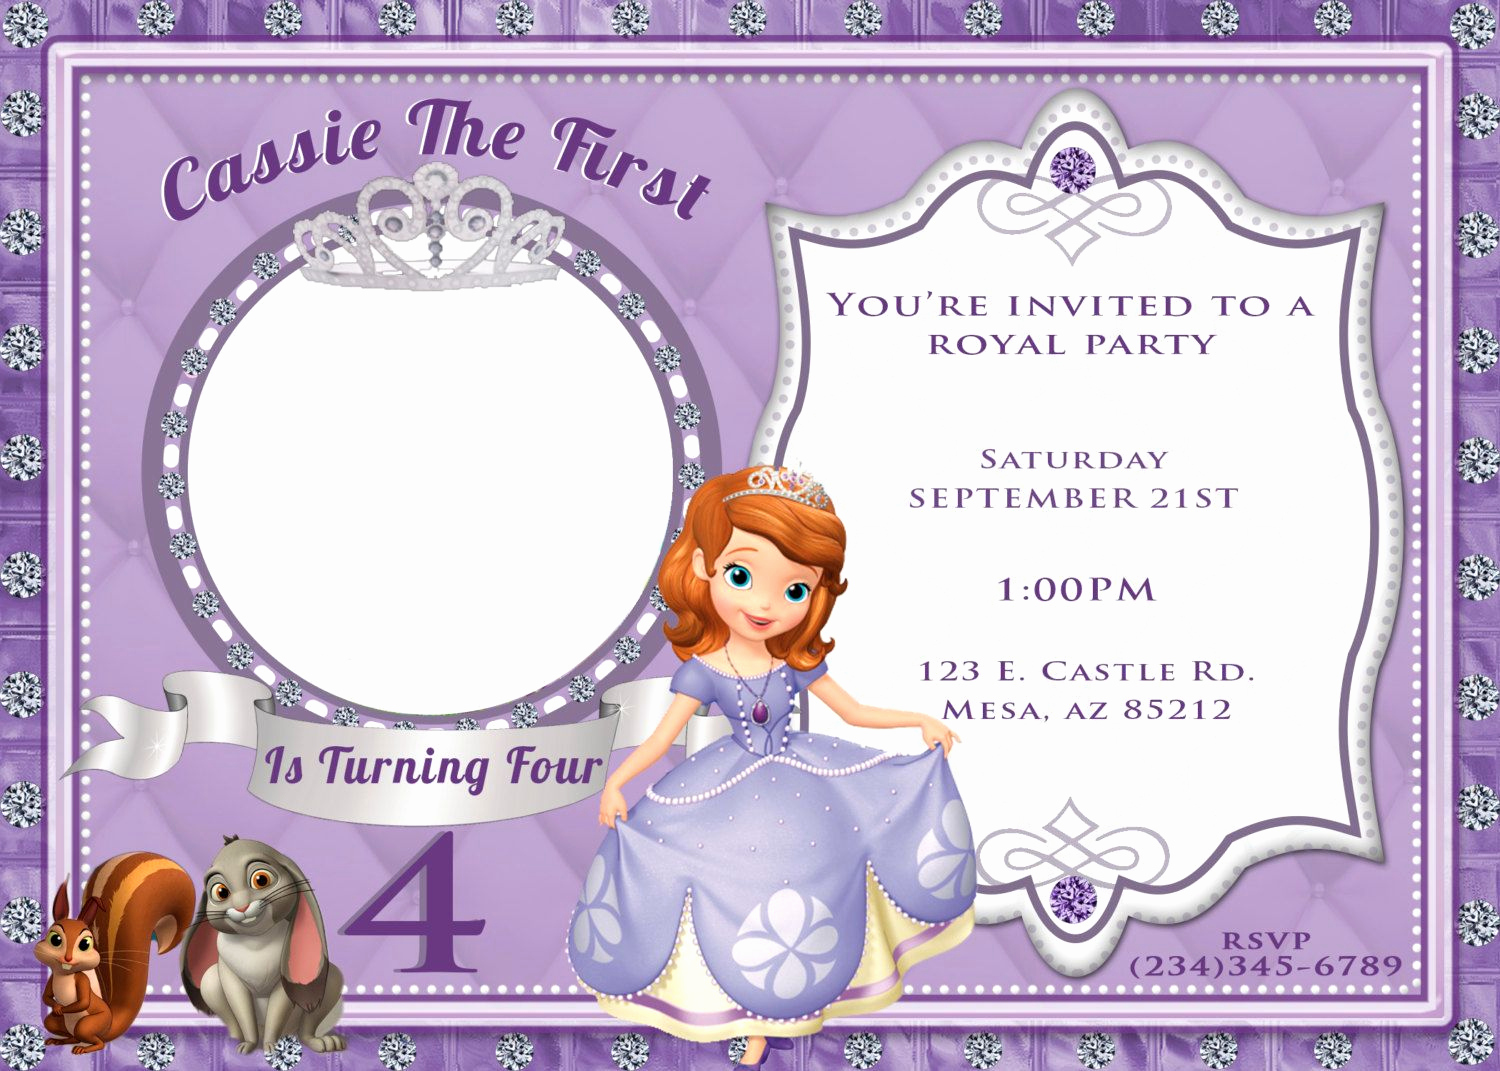 Sofia the First Invitation Fresh sofia the First Invitation by 4evrdesignsbykristyn On Etsy